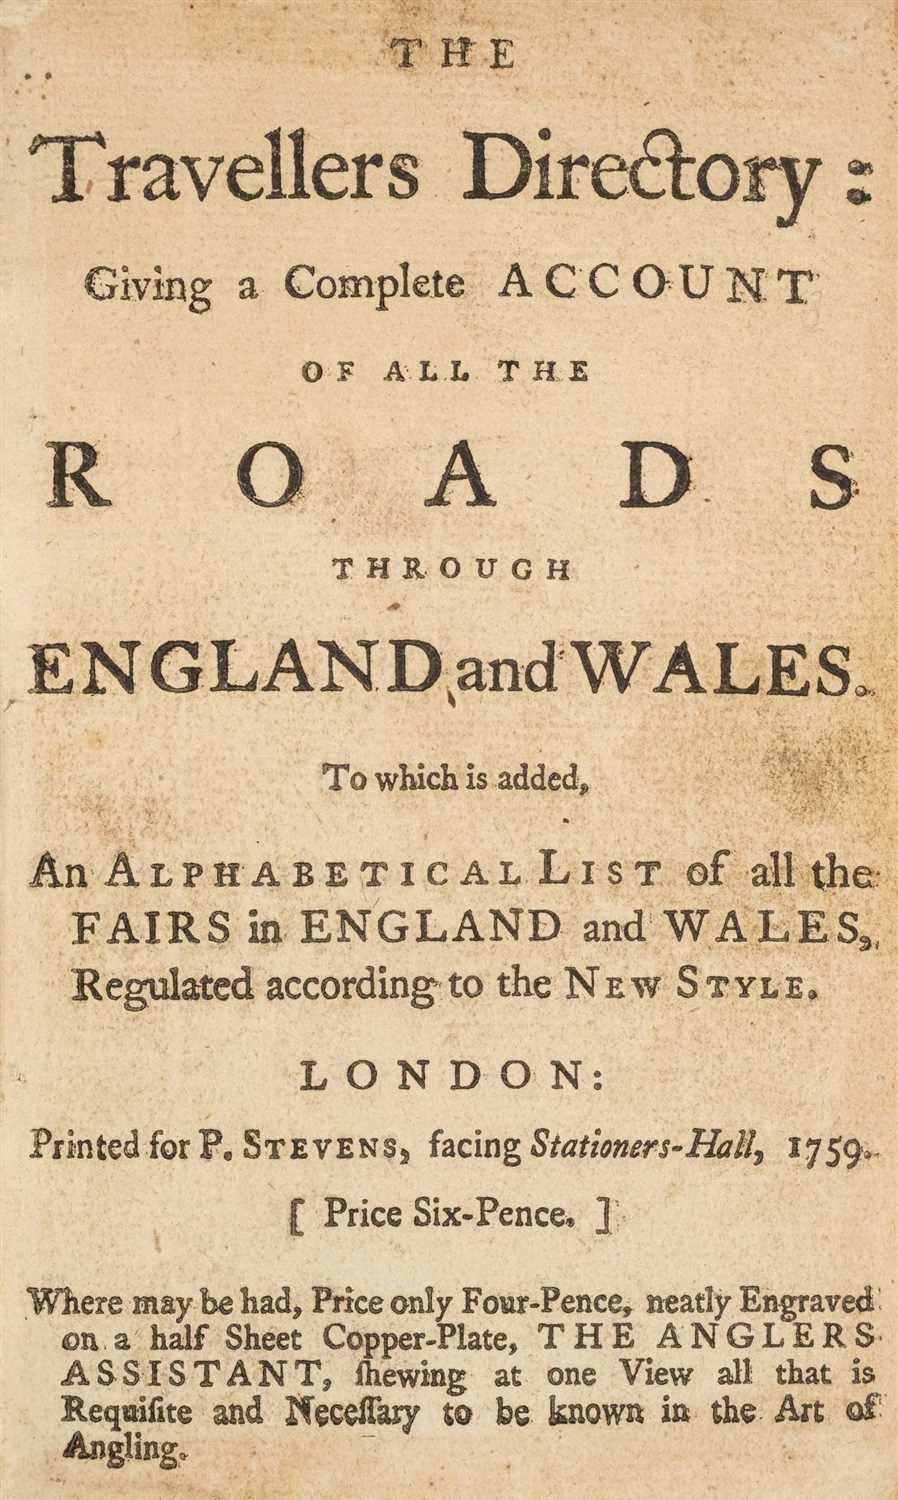 Lot 225 - Stevens (P., publisher). The Travellers Directory, 1759